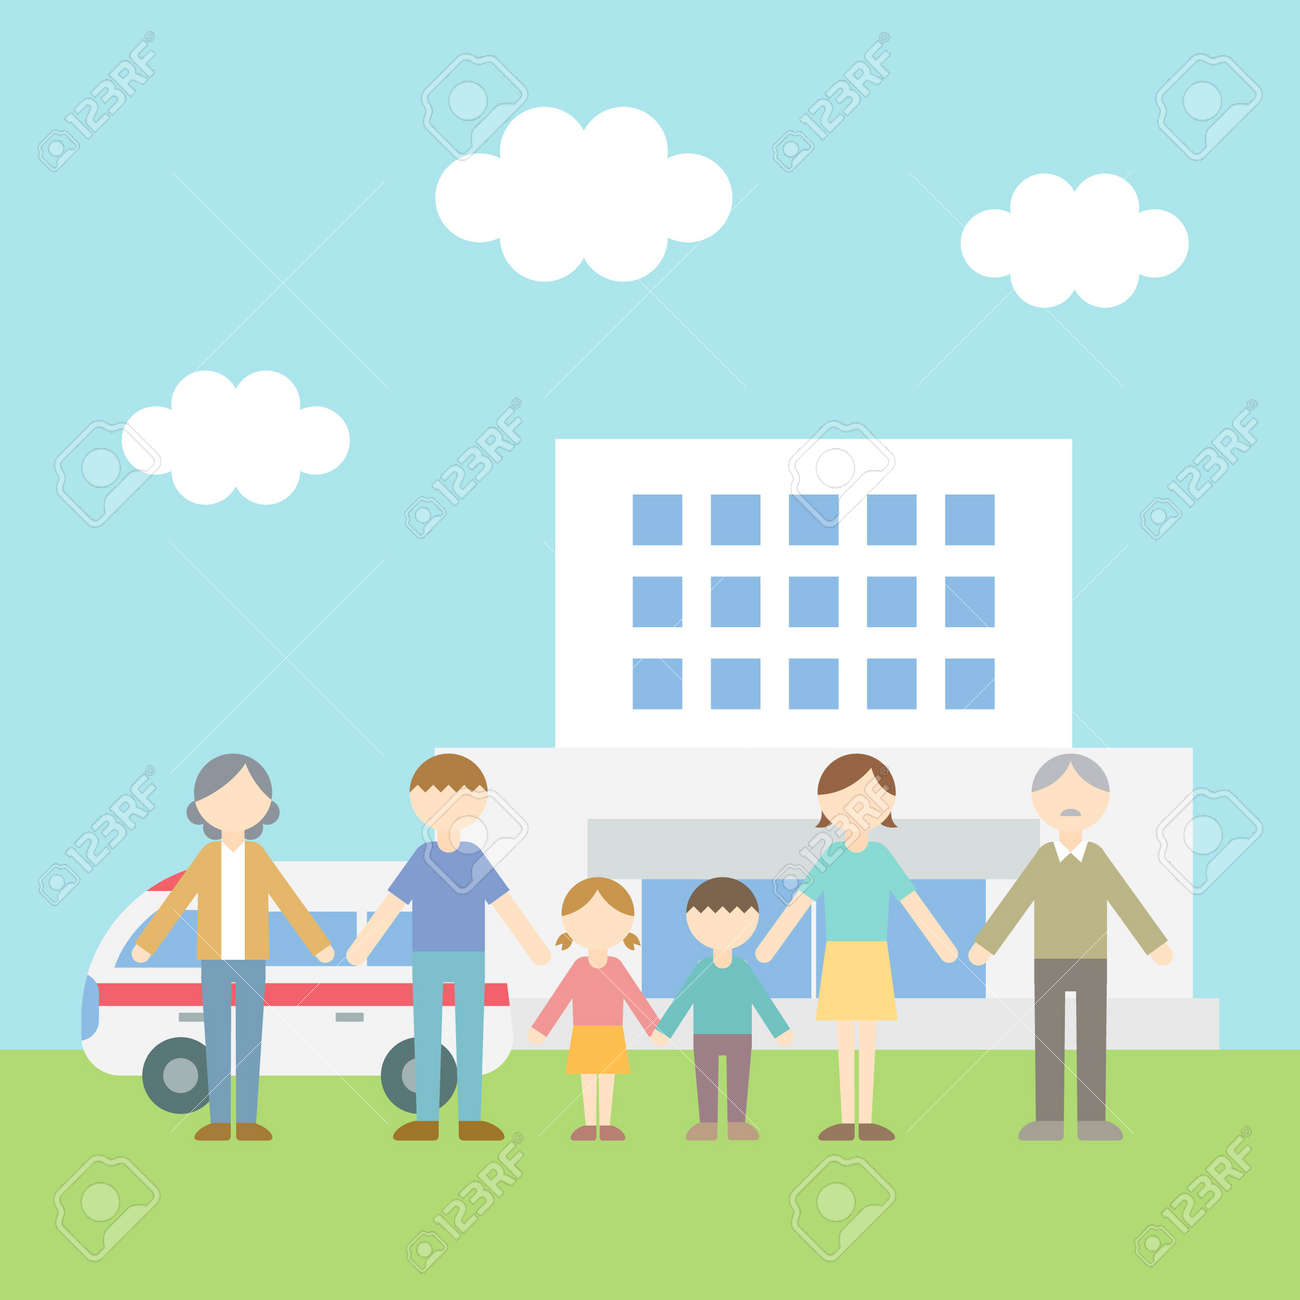 Flat Icon Person Family Hospital - 168585546